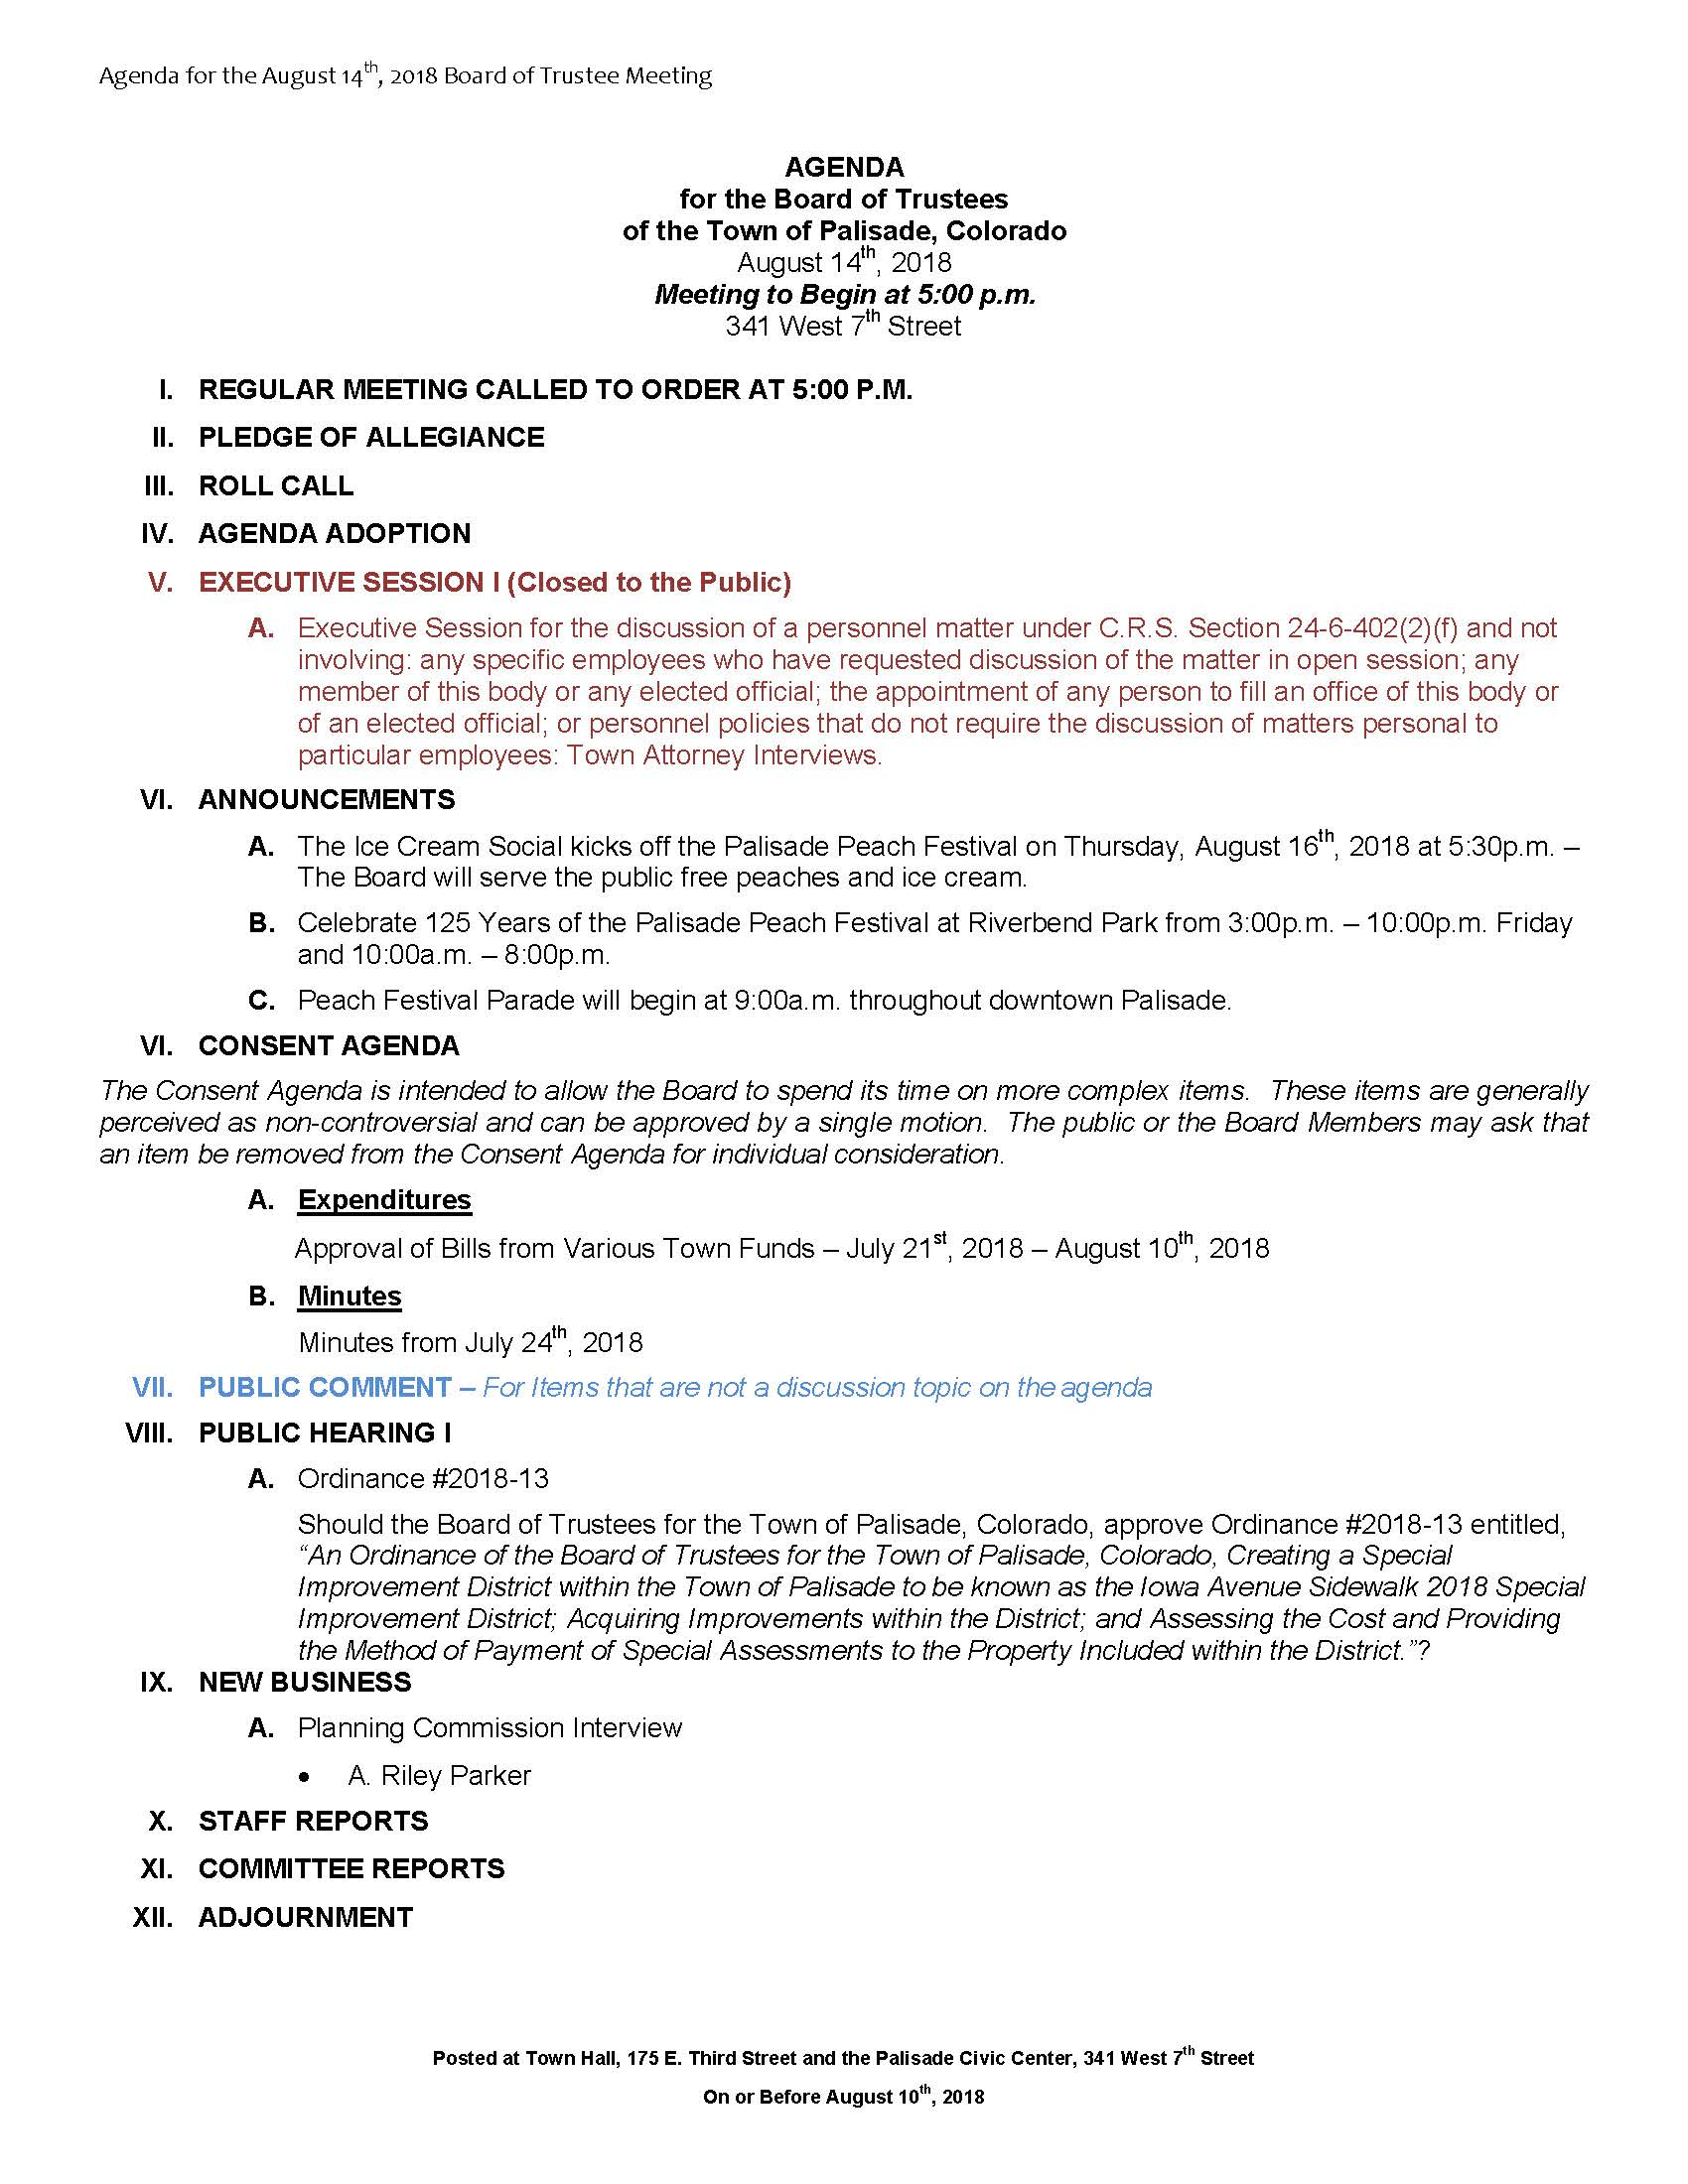 August 14th 2018 Board Meeting Agenda